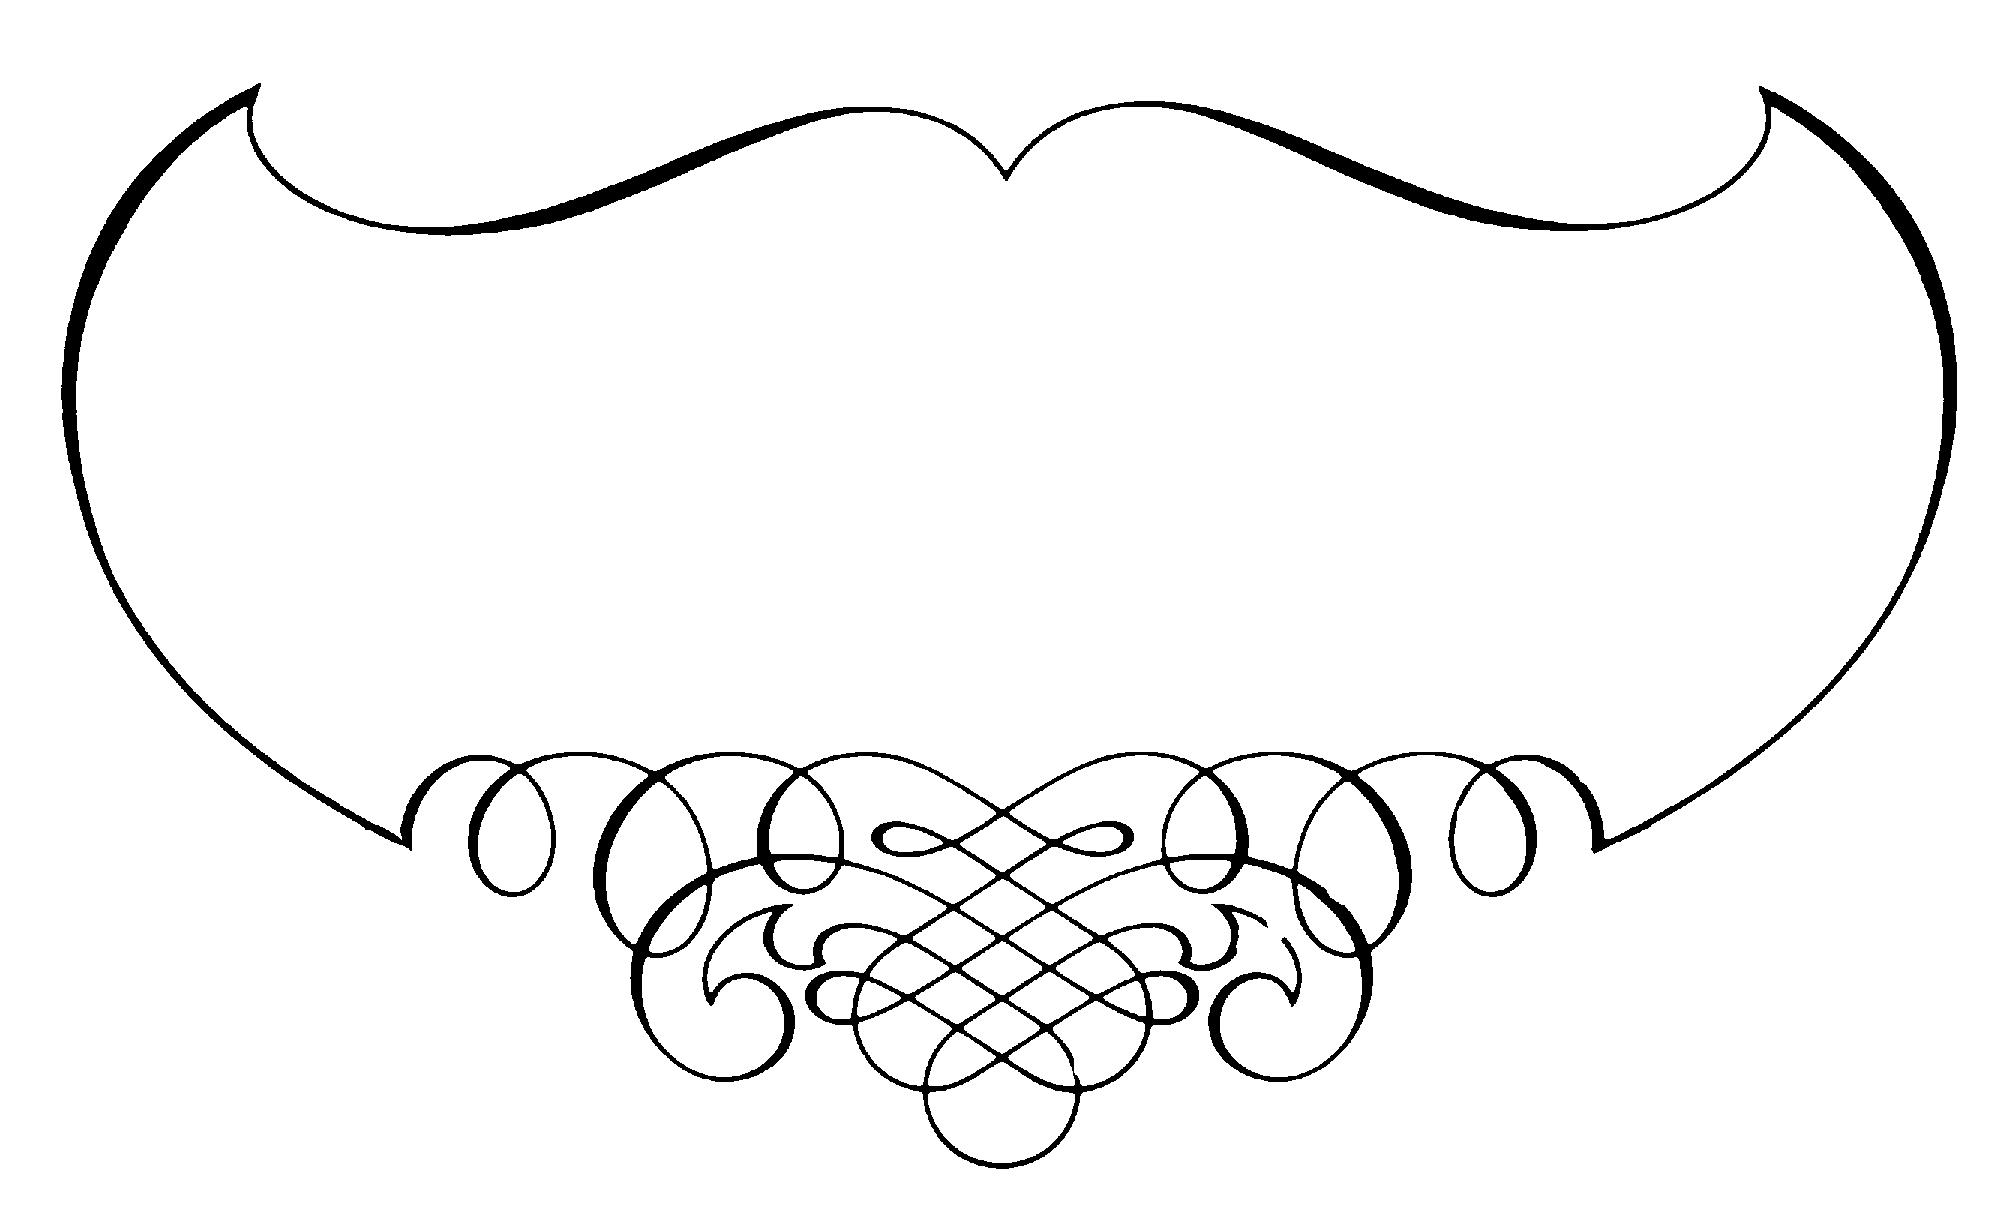 Simple calligraphy designs clipart best